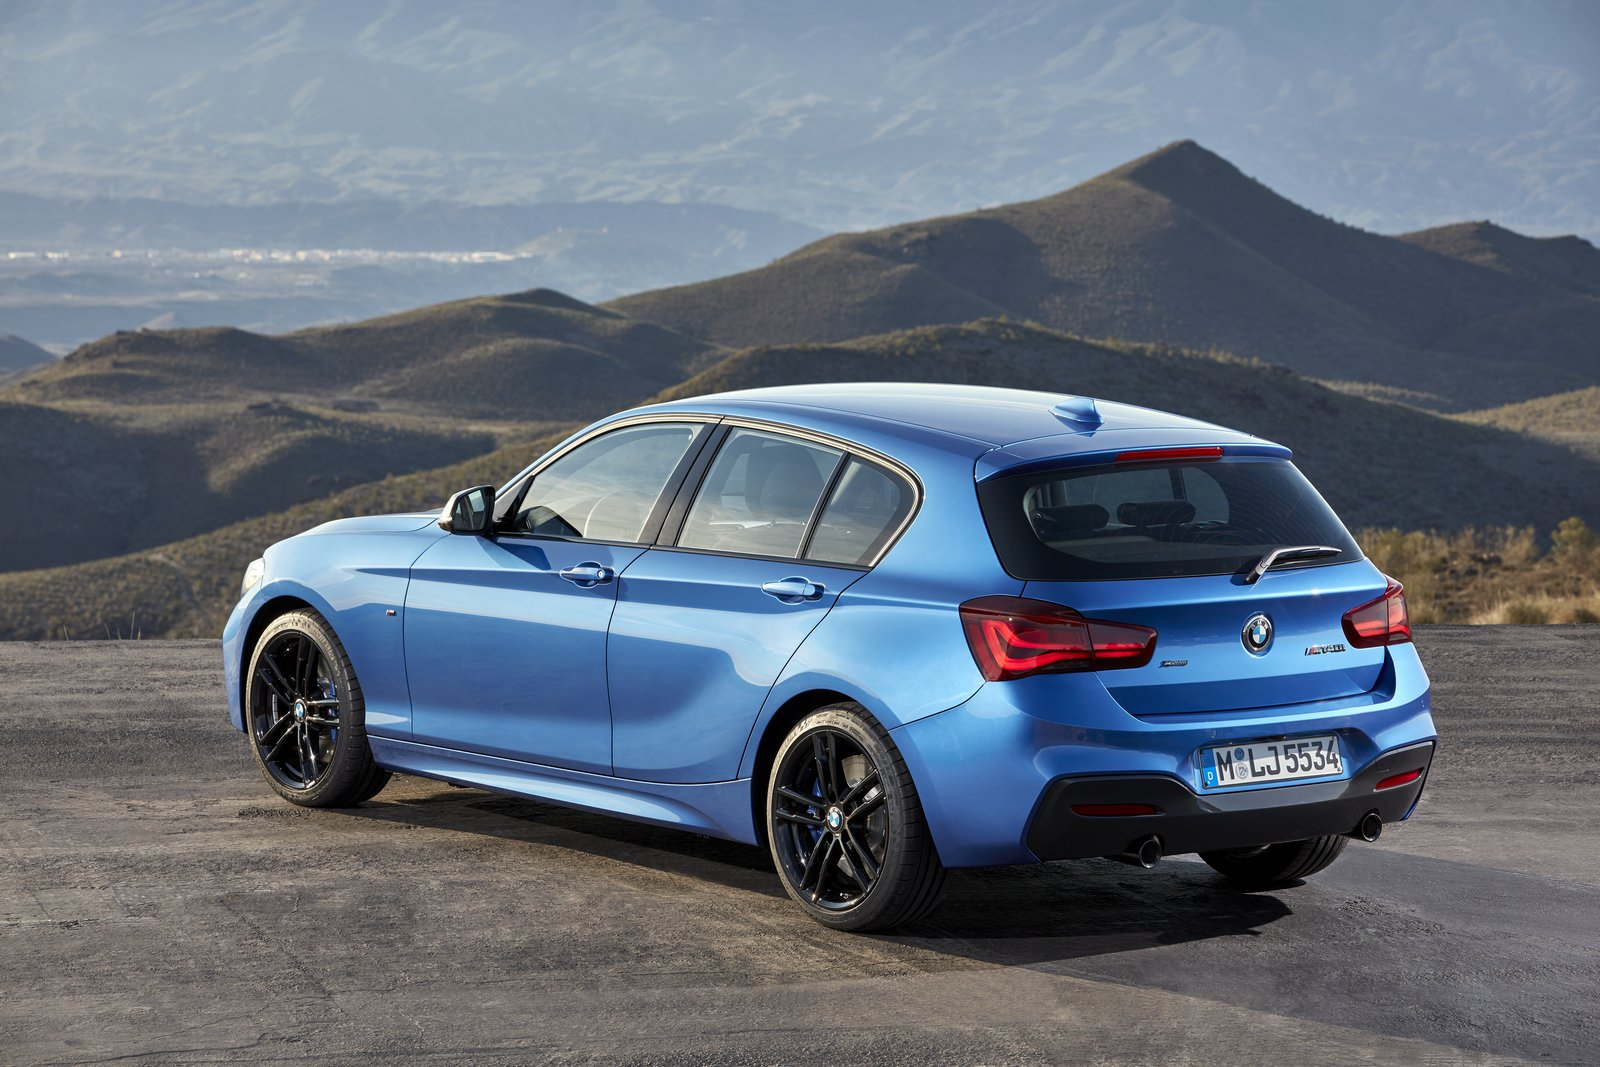 New Renault Clio 2019 >> 2018 BMW 1 Series refreshed with new interior and more technology - ForceGT.com